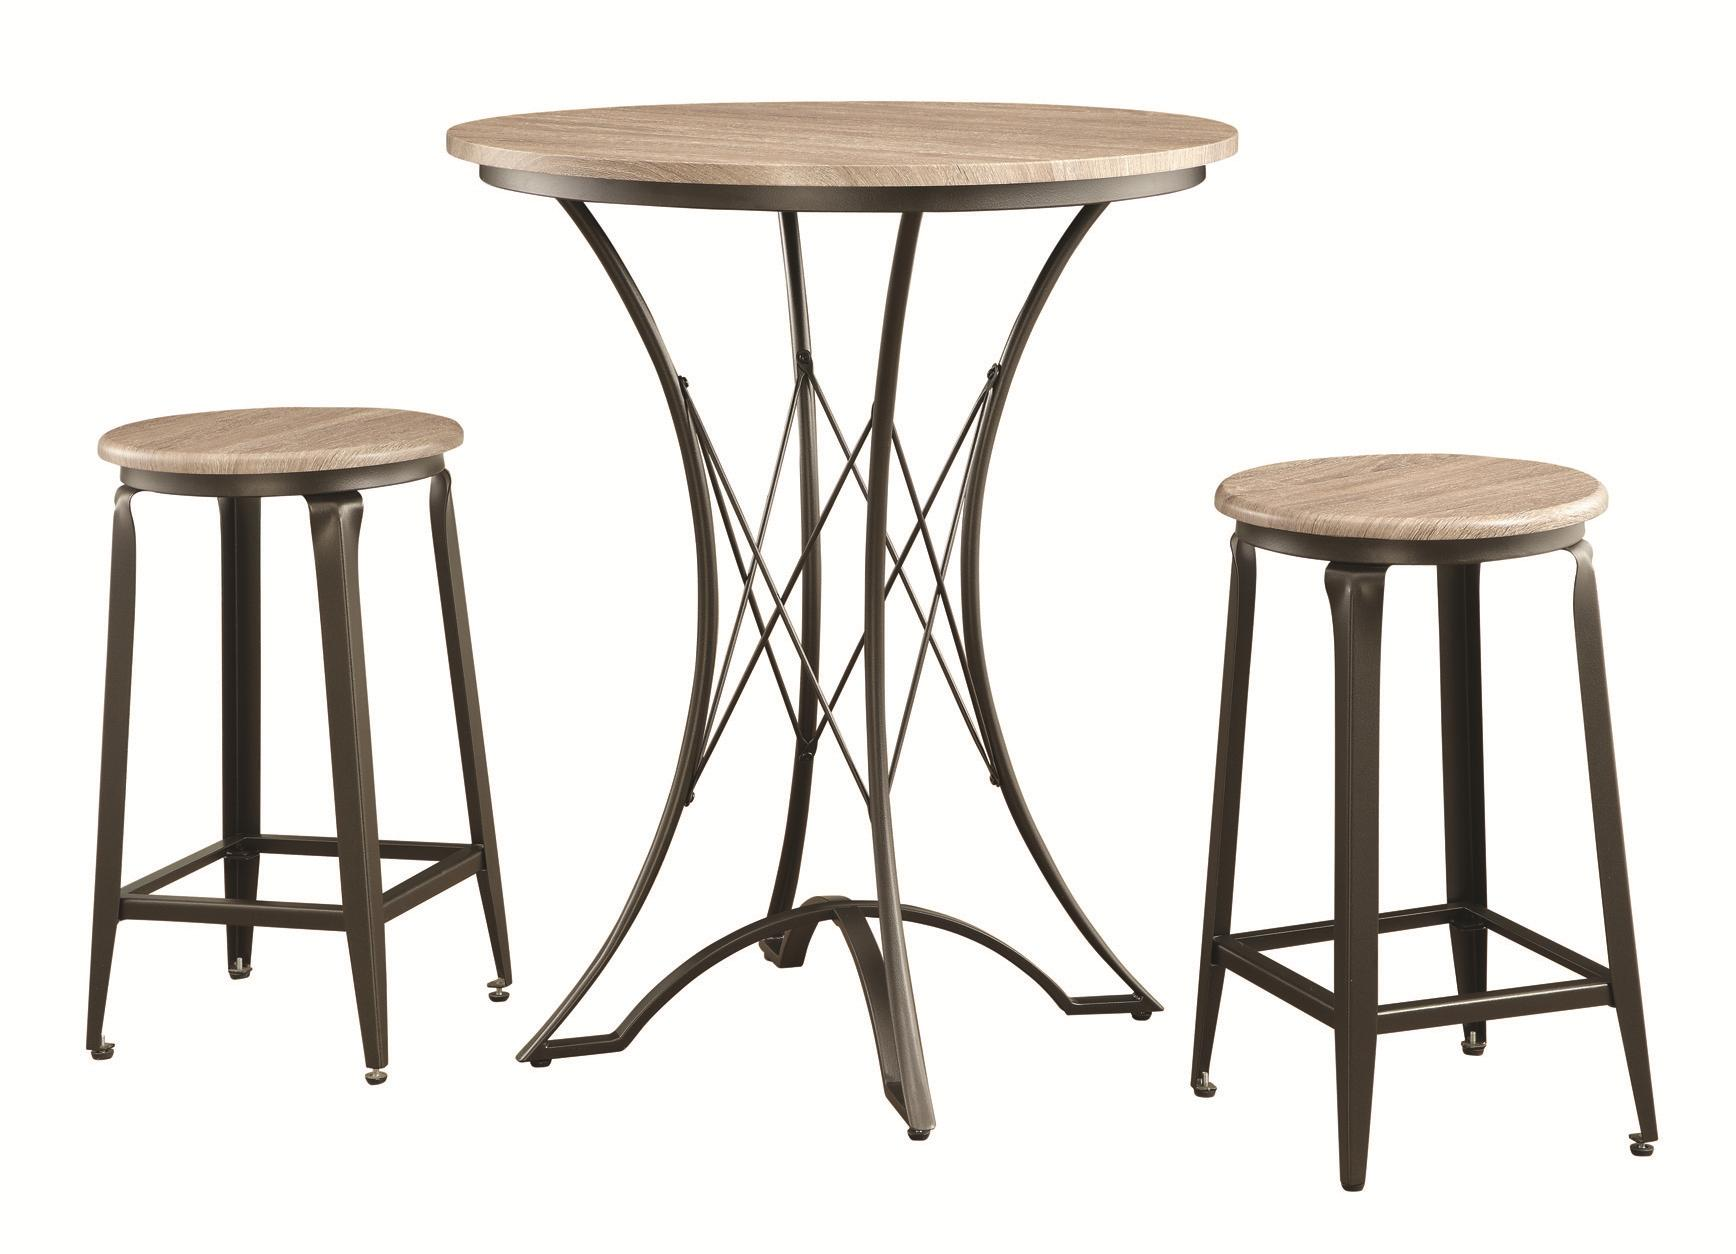 Coaster Bar Units and Bar Tables Counter Height Table Set with Stools - Item Number: 100006